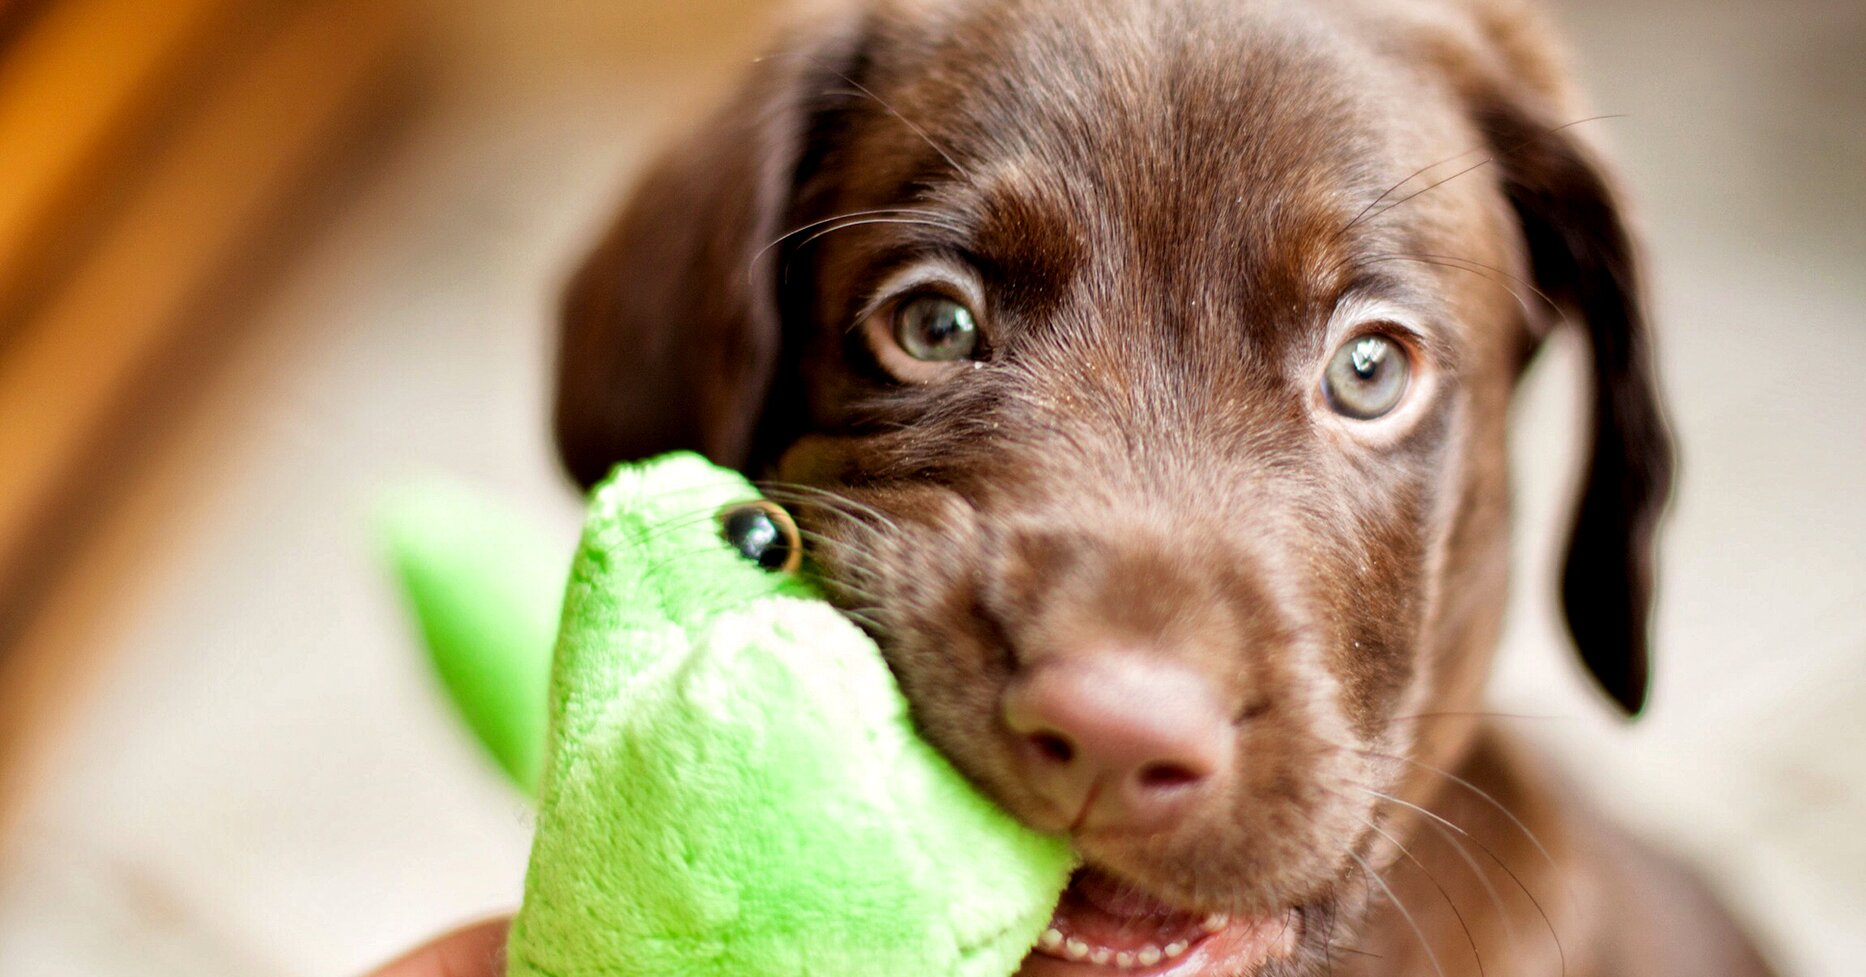 What to Know About Your Teething Puppy